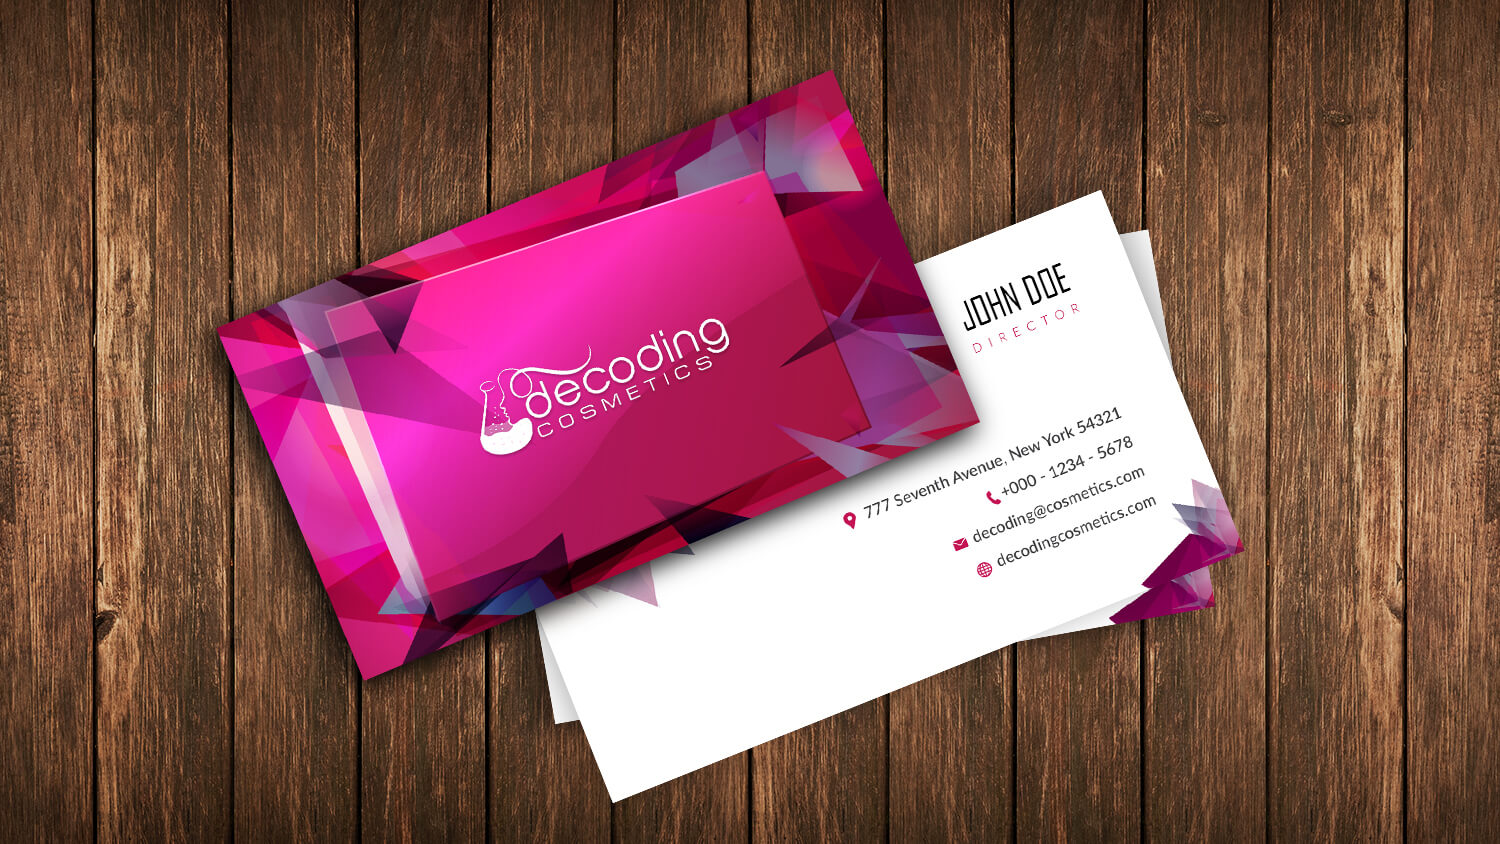 Decoding Business Card Design